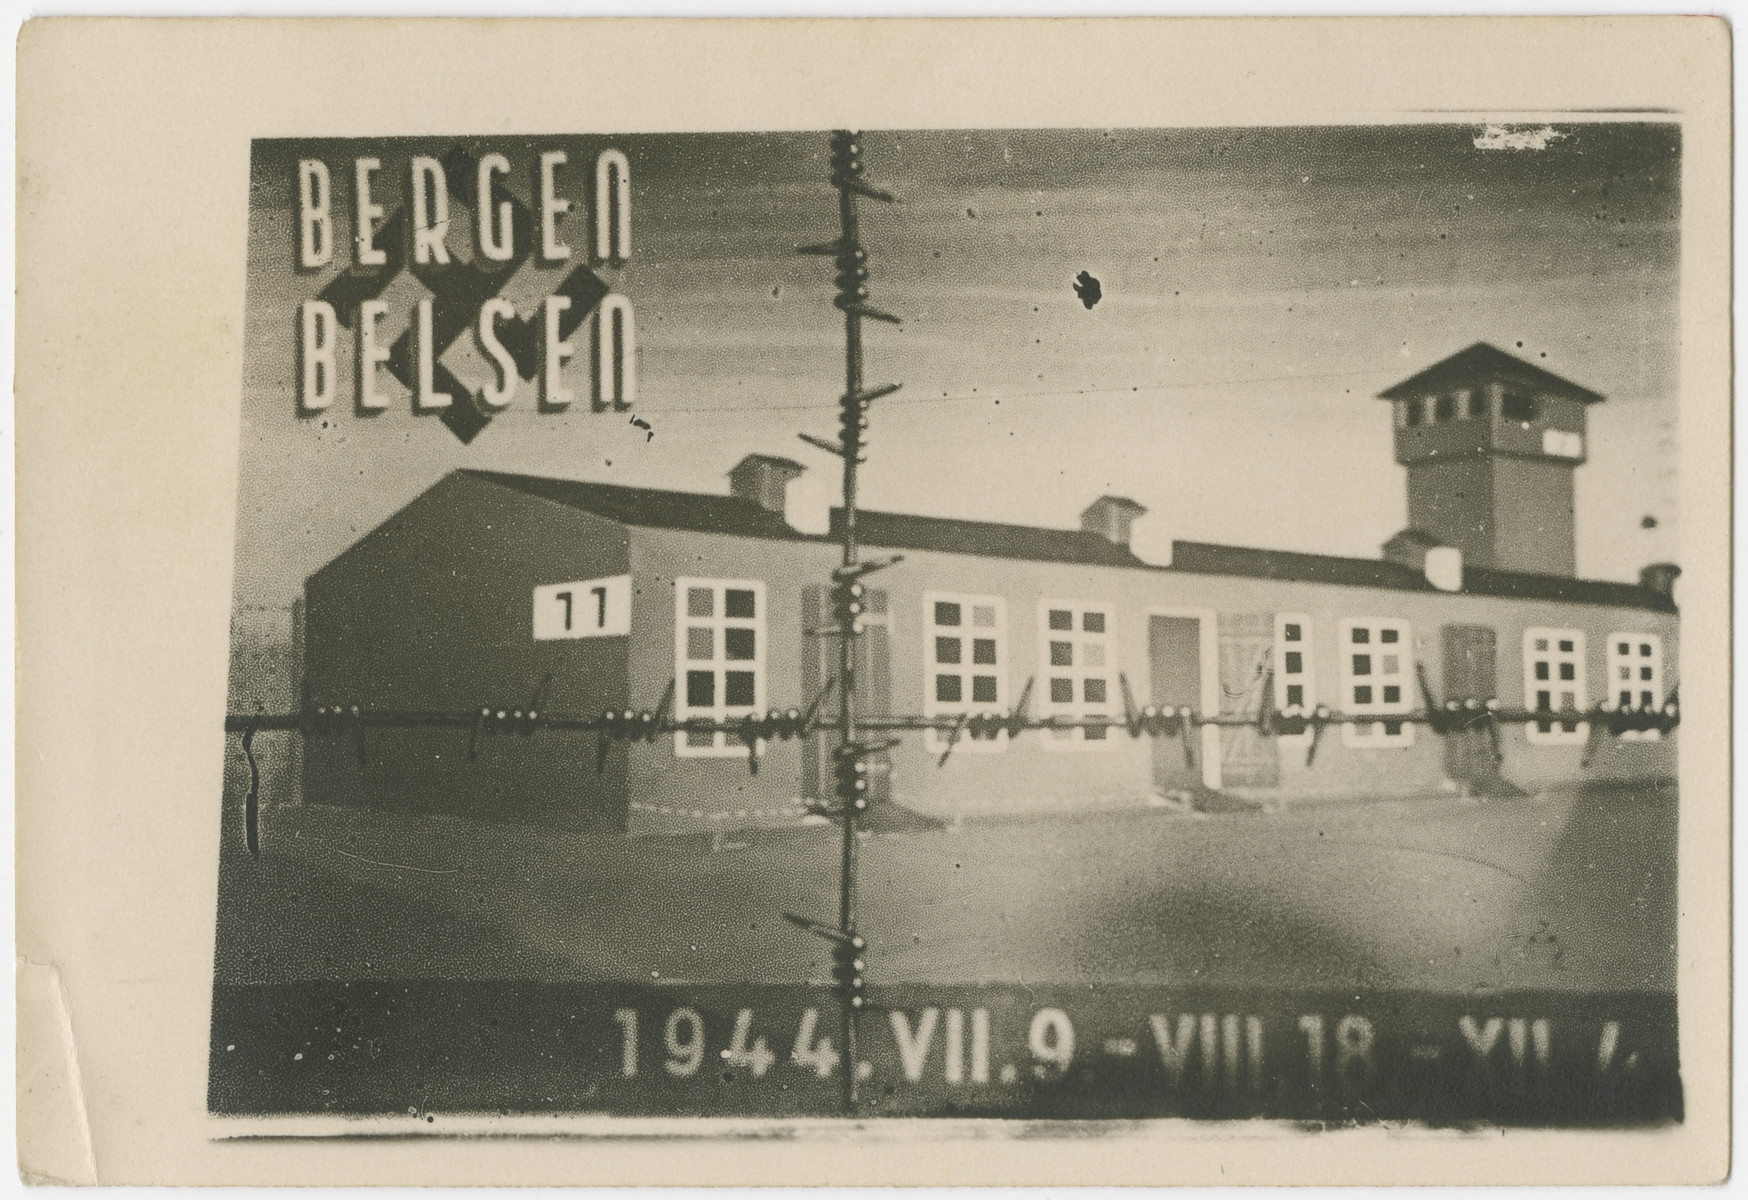 Commemorative postcard with a drawing of barrack 11 of Bergen-Belsen and marking the time the people on the Kasztner Train spent in the camp.  The Jews from the Kasztner transport lived in two barracks, 10 and 11, inside Bergen Belsen.  (This was probably drawn by the Hungarian artist Robert (Imre) Irsay who himself was on the Kasztner transport.)